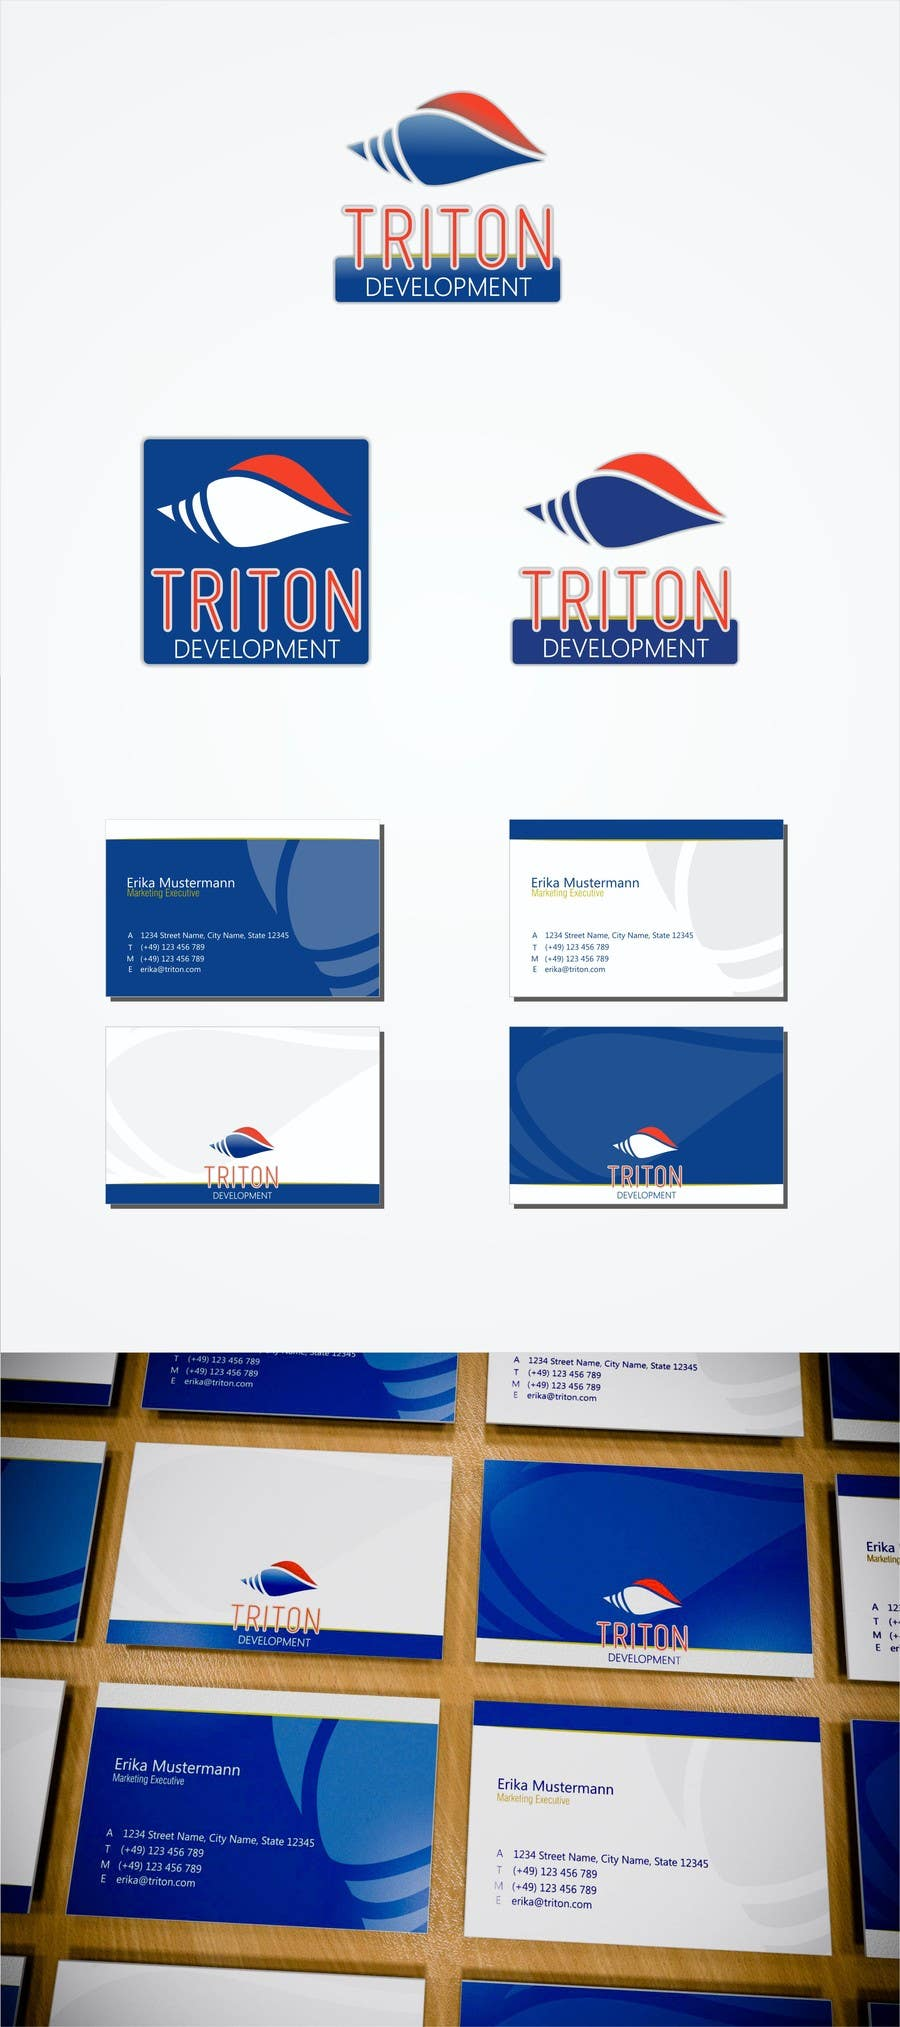 #209 for Design some Business Cards for Triton by walkingprimate